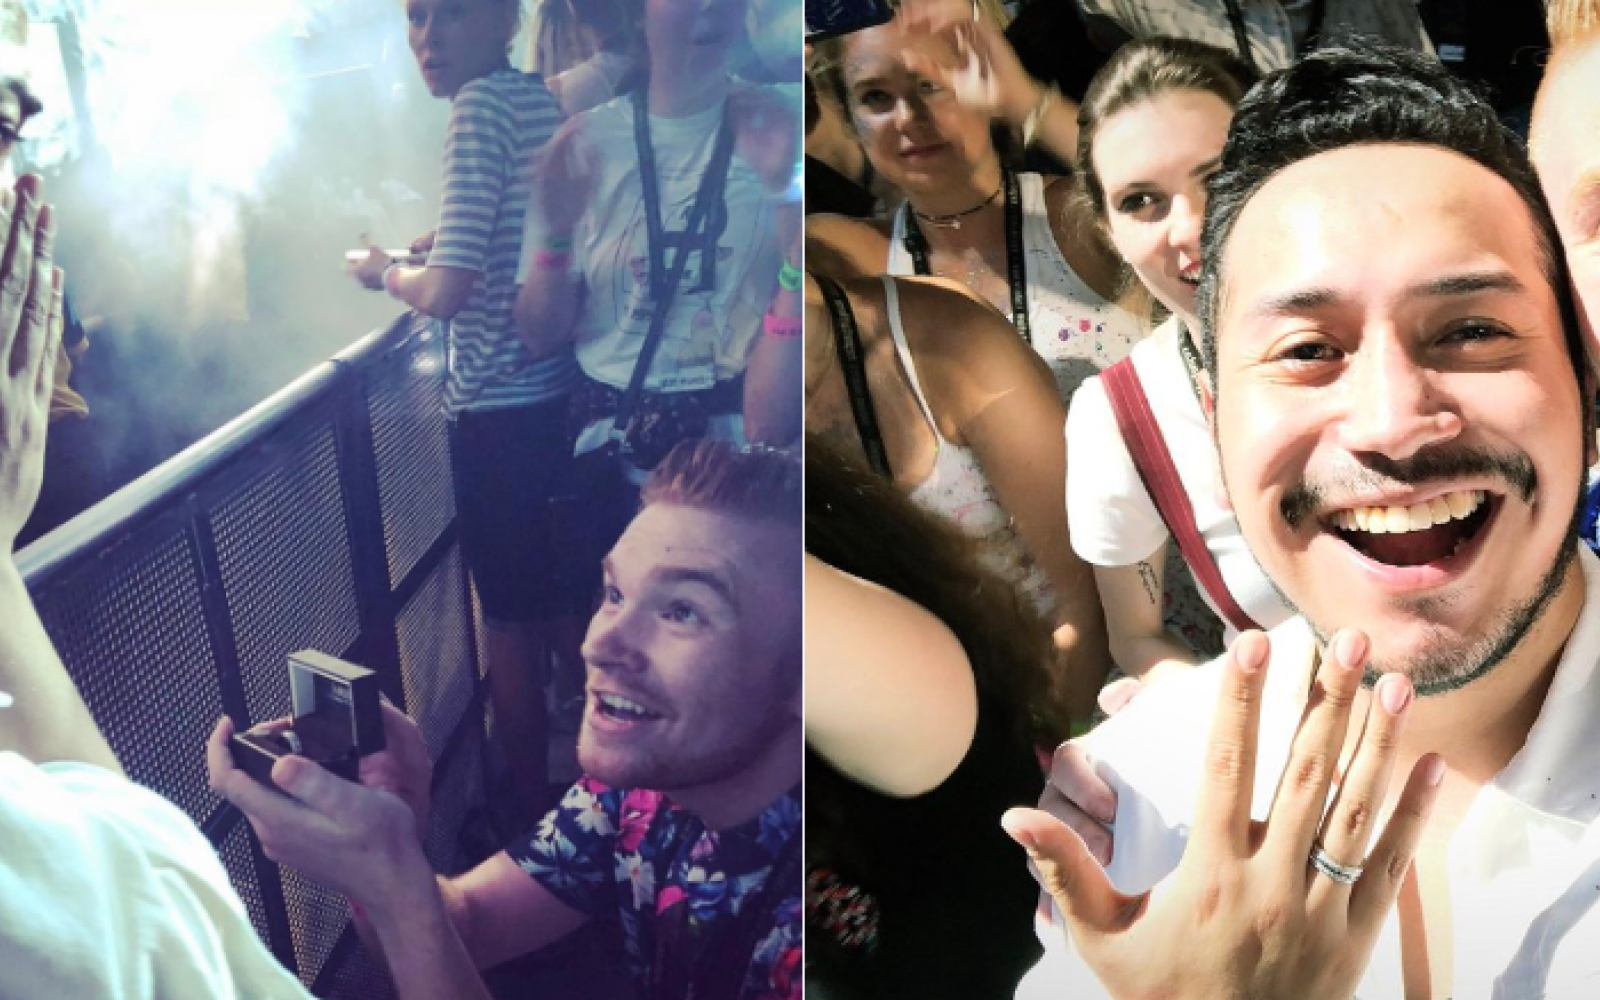 Man Proposes To Boyfriend At Taylor Swift Concert In Dc Aazios Lgbtq News And Entertainment